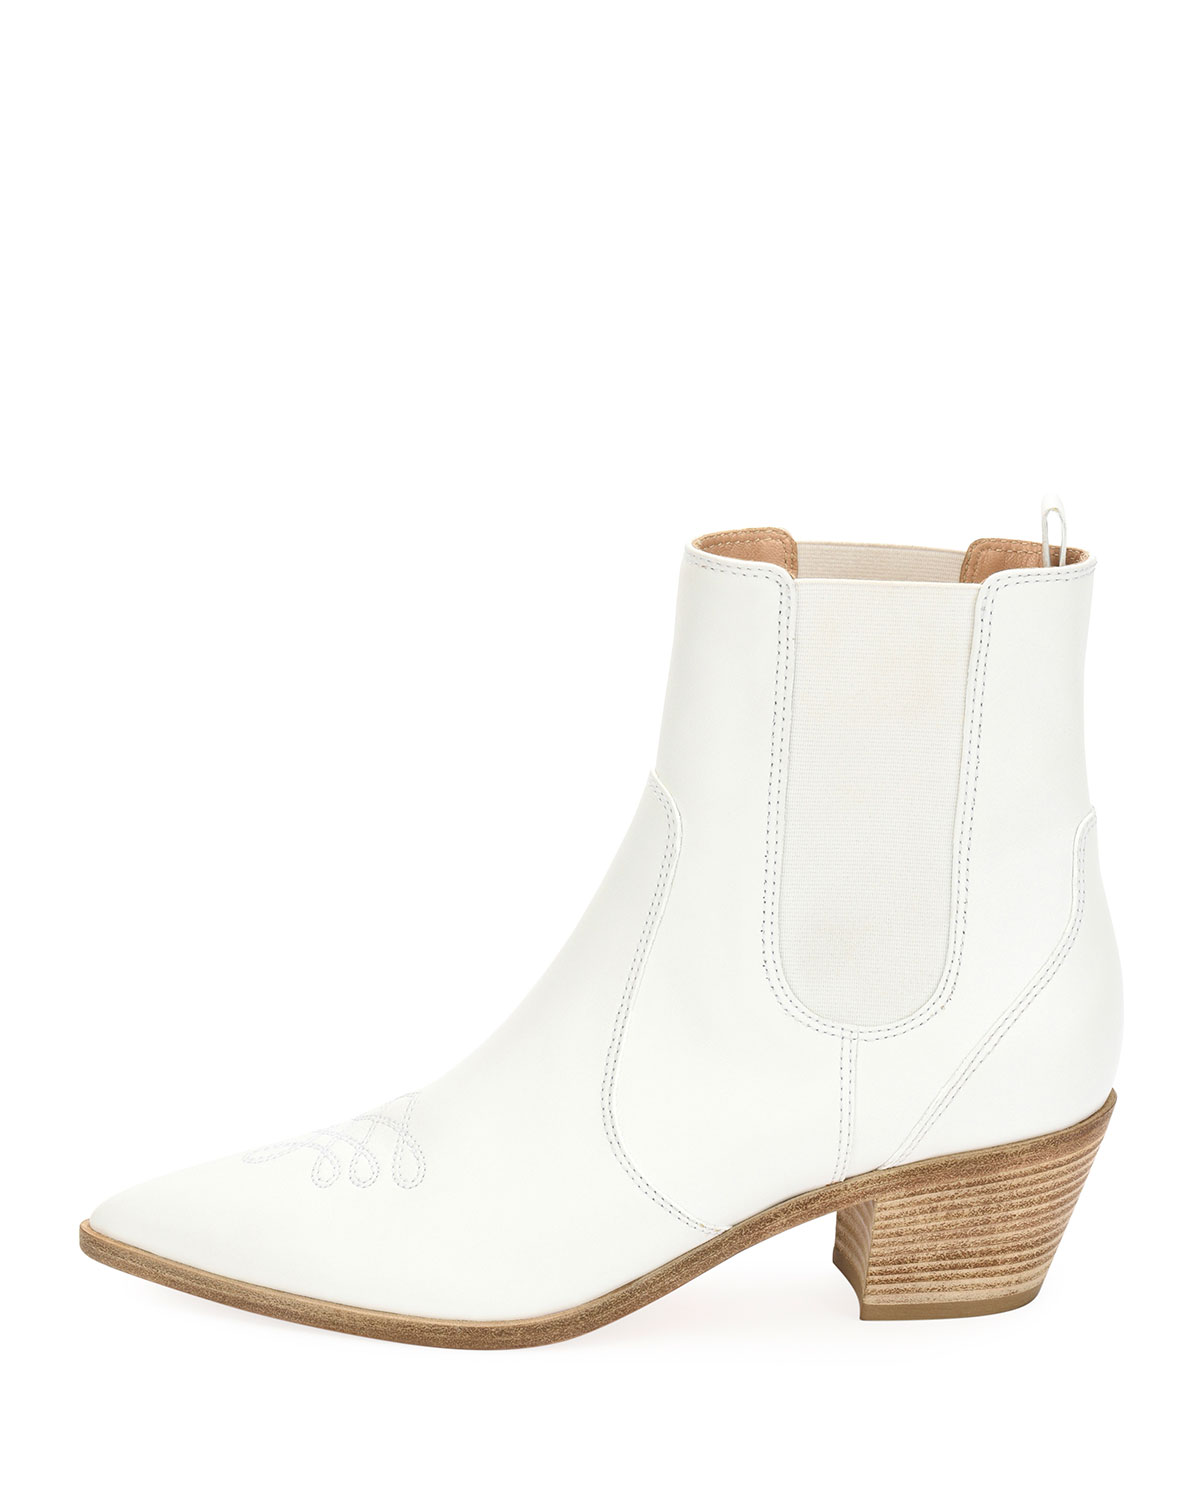 dfba086c0 Gianvito Rossi Embroidered Leather Western Ankle Boots | Neiman Marcus